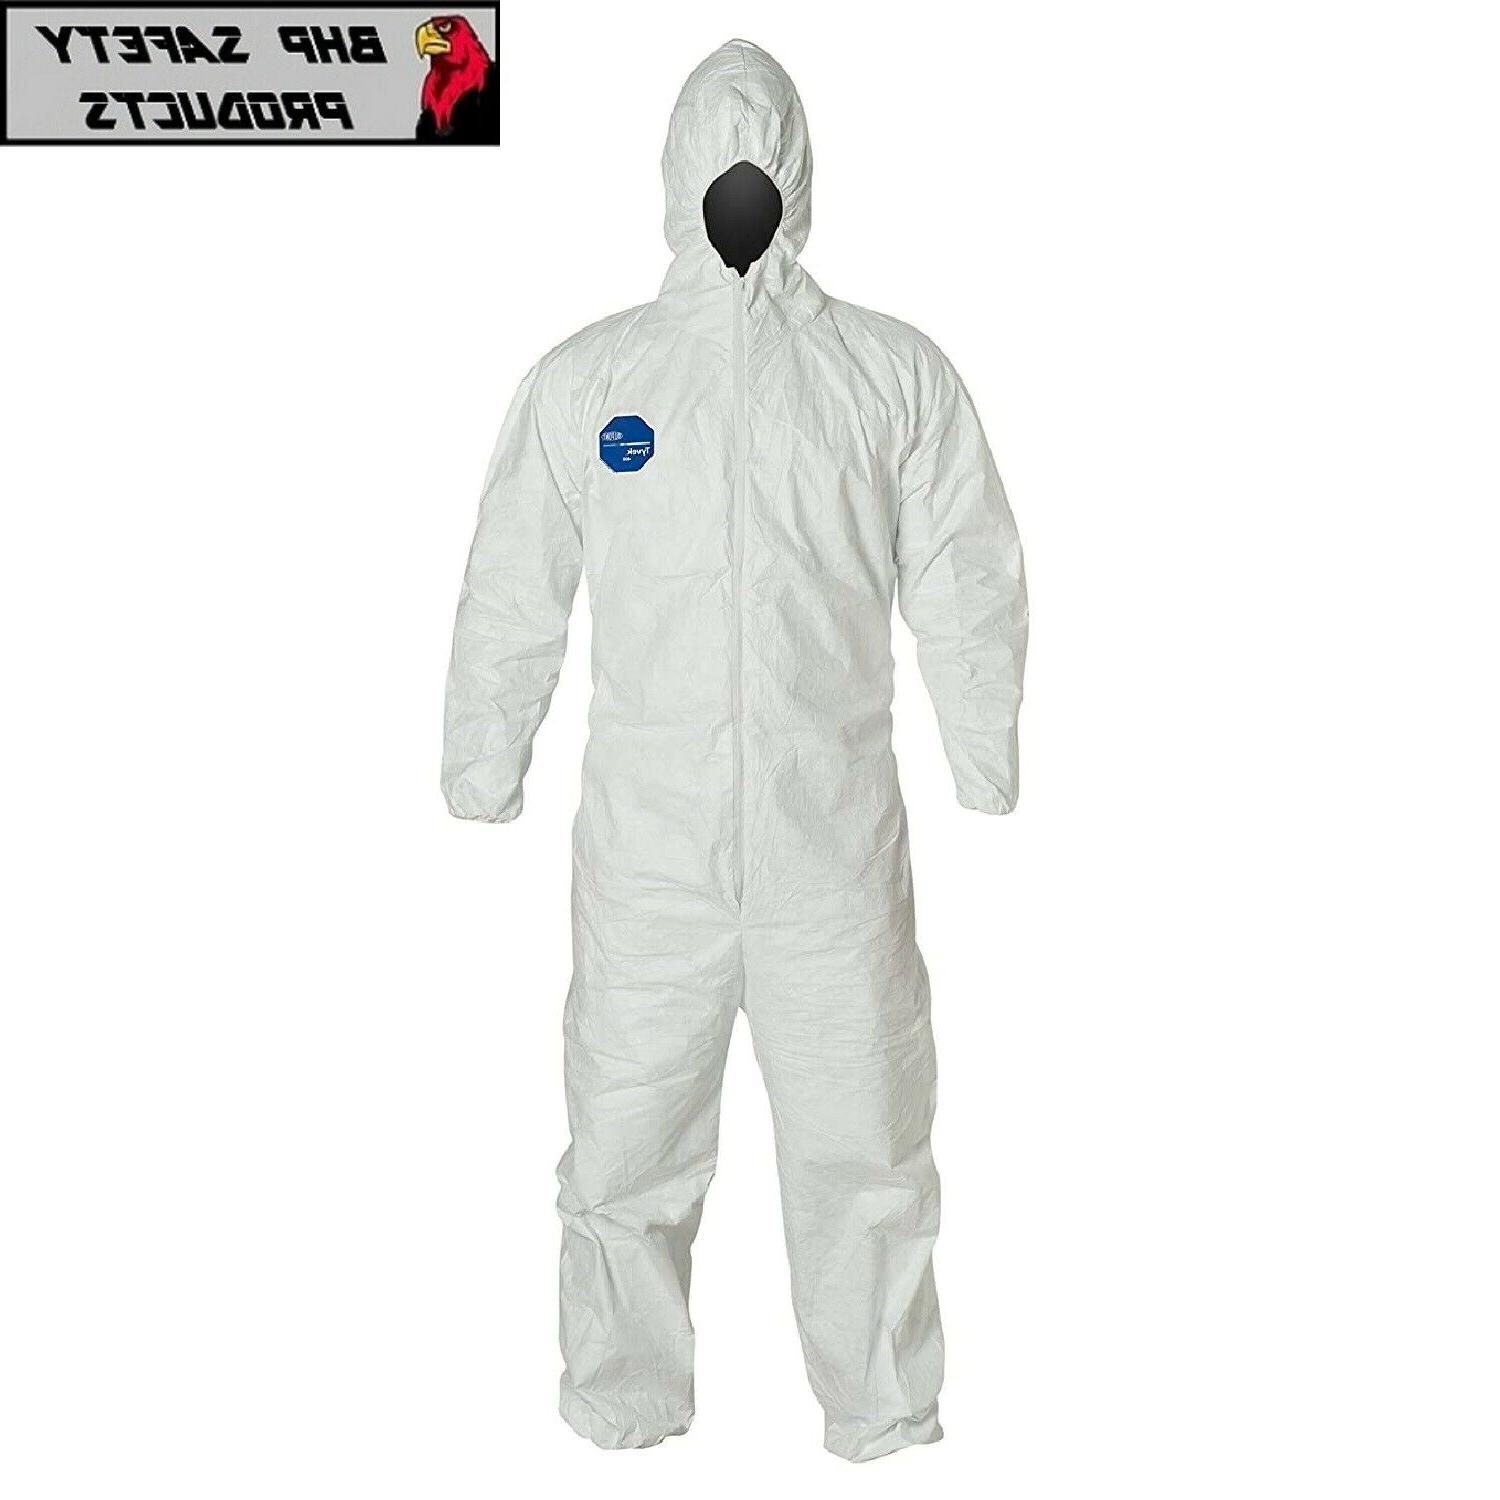 ty127s white tyvek coverall bunny suit hood